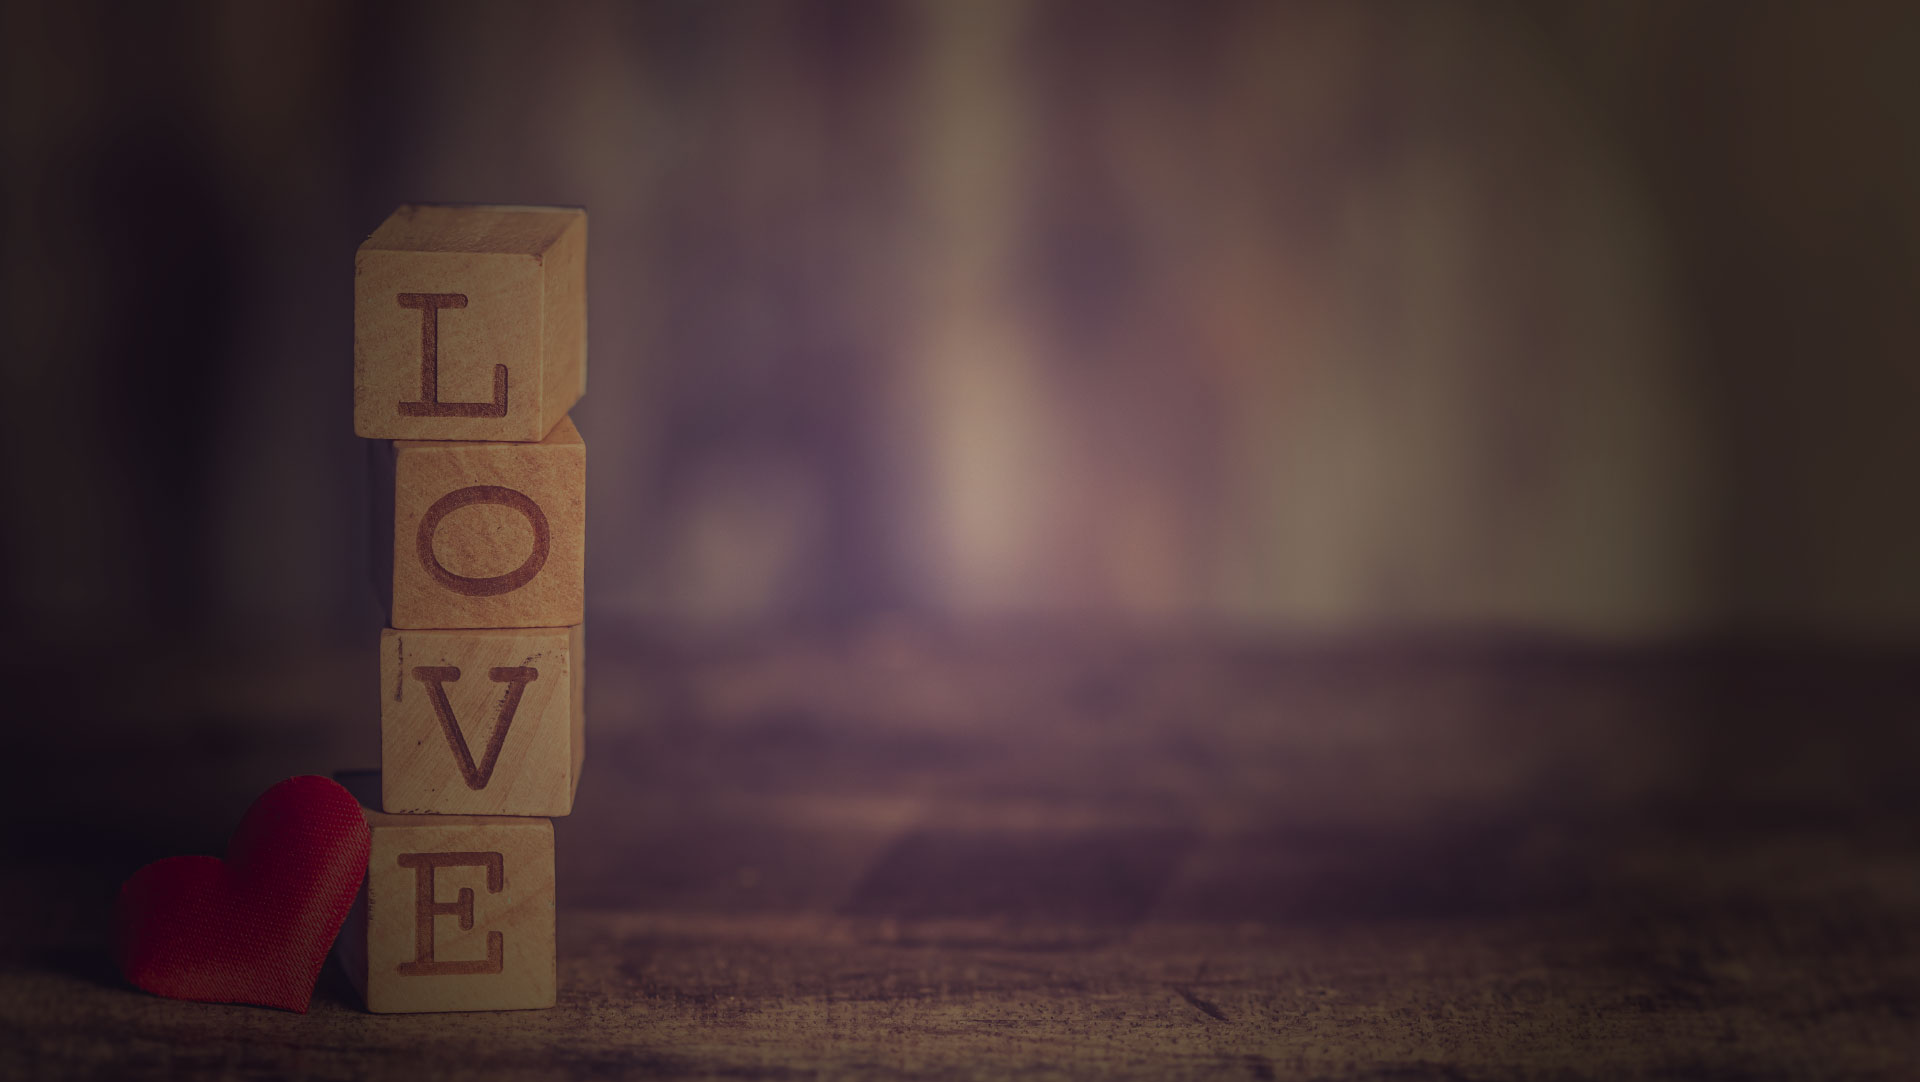 Thumbprint Media's about banner with wooden blocks spelling the word love